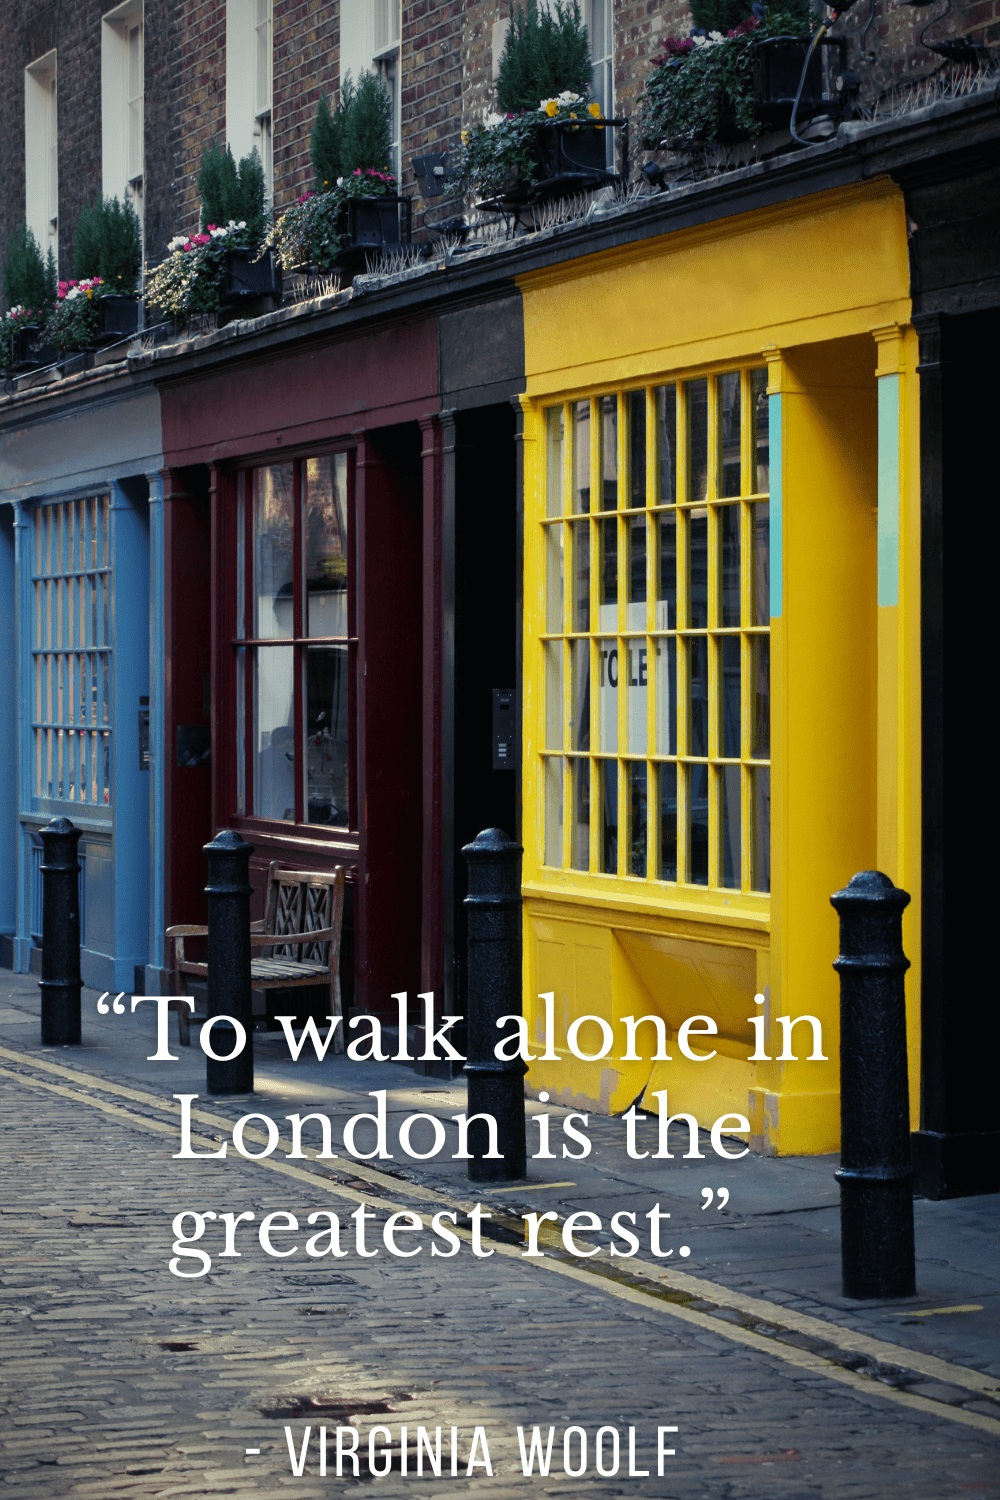 Great London quotes for instagram captions